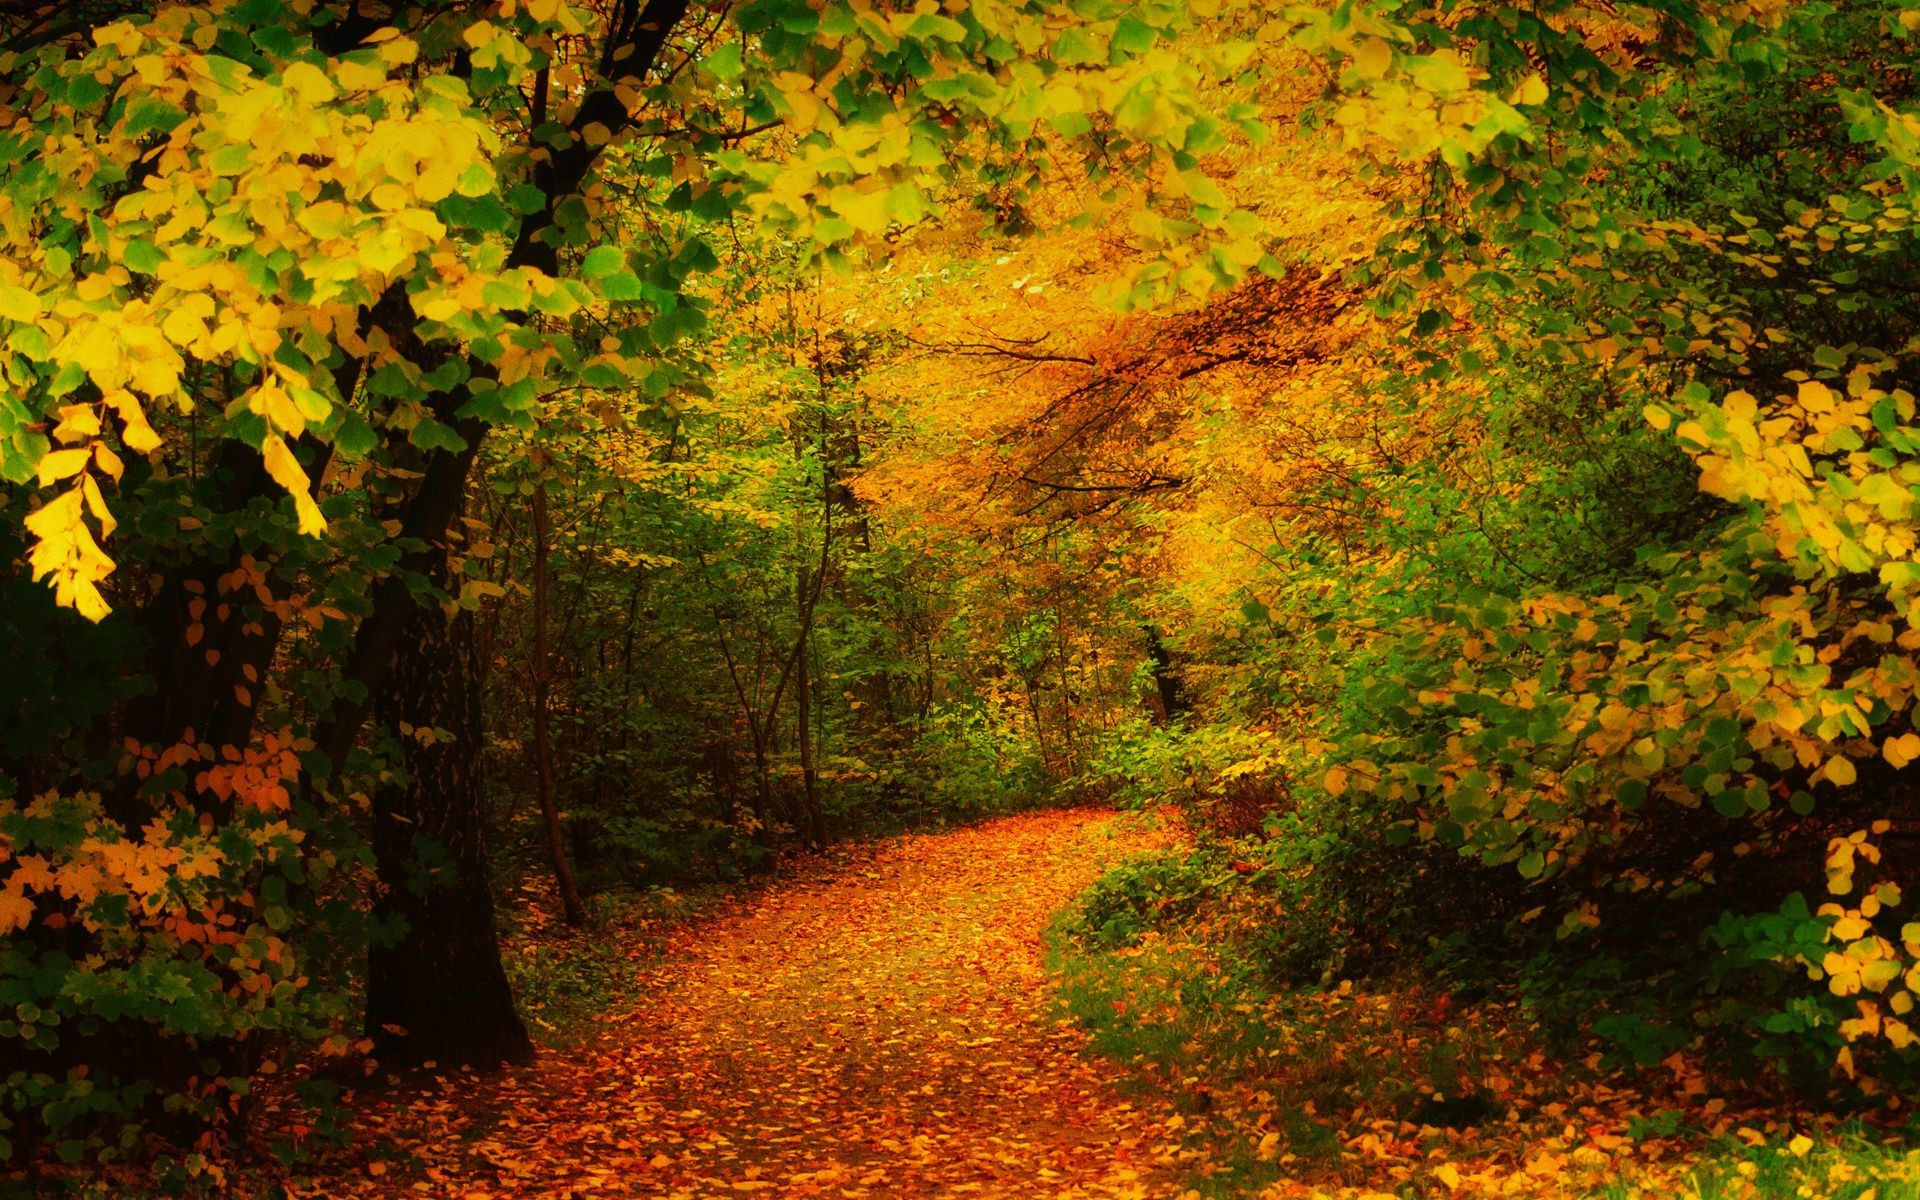 The Yellow Path Trees Autumn Leaves Desktop Wallpapers For Free